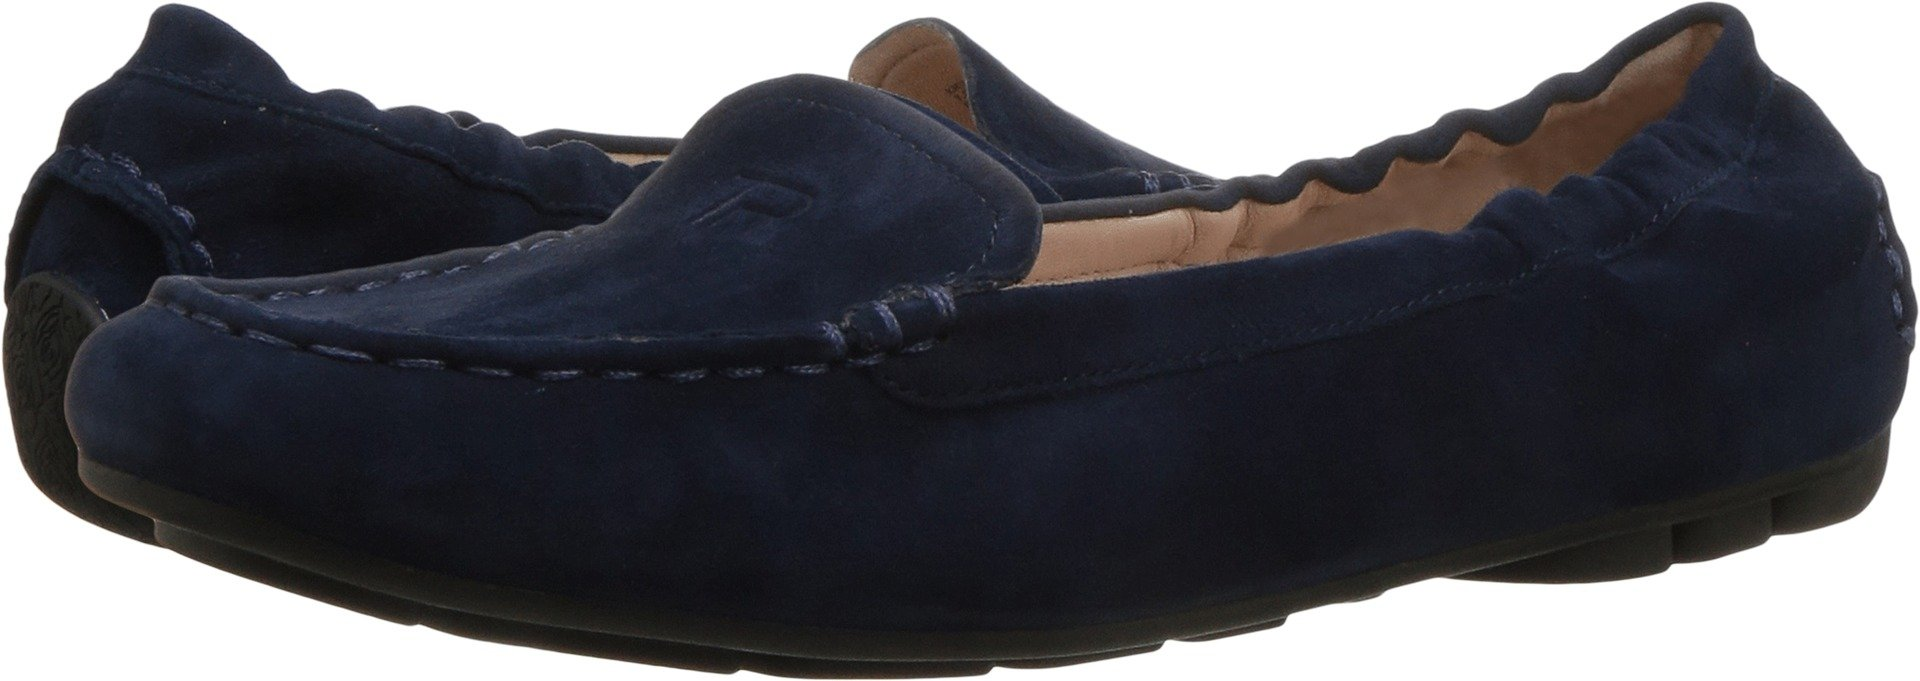 Taryn Rose Women's Kristine Driving Style Loafer